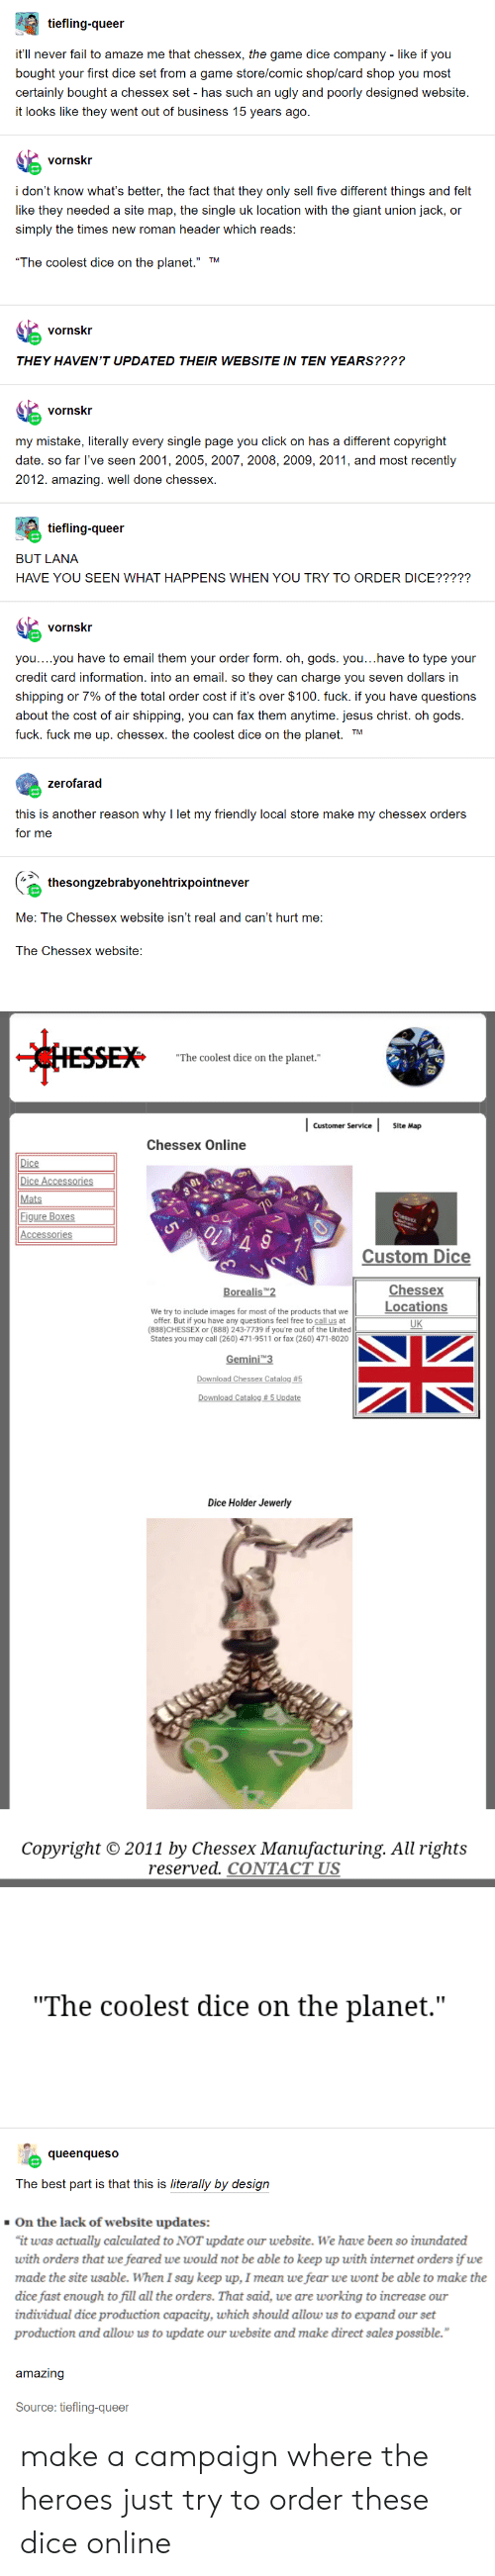 """Click, Fail, and Internet: tiefling-queer  it'll never fail to amaze me that chessex, the game dice company - like if you  bought your first dice set from a game store/comic shop/card shop you most  certainly bought a chessex set - has such an ugly and poorly designed website  it looks like they went out of business 15 years ago.  vornskr  i don't know what's better, the fact that they only sell five different things and felt  like they needed a site map, the single uk location with the giant union jack, or  simply the times new roman header which reads:  """"The coolest dice on the planet."""" TM  vornskr  THEY HAVEN'T UPDATED THEIR WEBSITE IN TEN YEARS????  vornskr  my mistake, literally every single page you click on has a different copyright  date. so far I've seen 2001, 2005, 2007, 2008, 2009, 2011, and most recently  2012. amazing. well done chessex.  tiefling-queer  BUT LANA  HAVE YOU SEEN WHATHAPPENS WHEN YOU TRY TO ORDER DICE?????  vornskr  you....you have to email them your order form. oh, gods. you...have to type your  credit card information. into an email. so they can charge you seven dollars in  shipping or 7% of the total order cost if it's over $100. fuck. if you have questions  about the cost of air shipping, you can fax them anytime. jesus christ. oh gods.  fuck. fuck me up. chessex. the coolest dice on the planet. TM  zerofarad  this is another reason why I let my friendly local store make my chessex orders  for me  thesongzebrabyonehtrixpointnever  Me: The Chessex website isn't real and can't hurt me:  The Chessex website:  CHESSEX  """"The coolest dice on the planet.""""  Customer Service  Site Map  Chessex Online  Dice  Dice Accessories  Mats  Figure Boxes  Accessories  Custom Dice  Chessex  Locations  Borealis T2  We try to include images for most of the products that we  offer. But if you have any questions feel free to call us at  (888)CHESSEX or (888) 243-7739 if you're out of the United  States you may call (260) 471-9511 or fax (260) 471-8020  UK  Ge"""